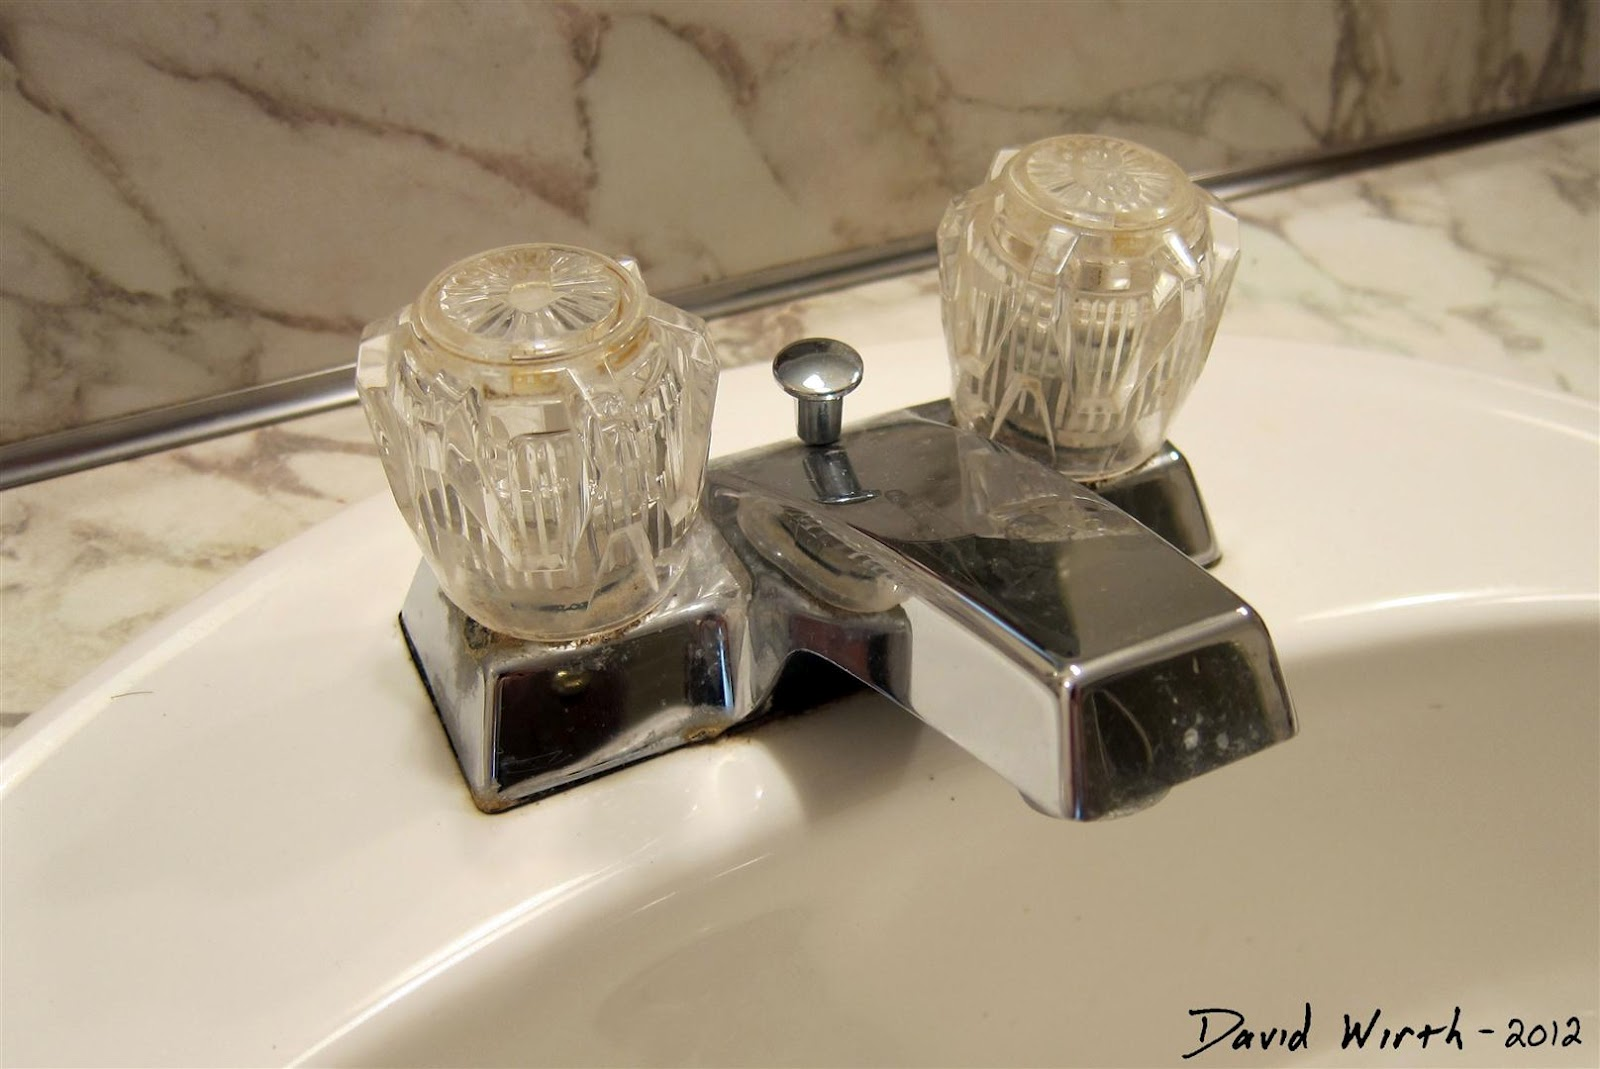 Bathroom Sink Faucet Replacement : bathroom faucet, get rid of that old faucet, cheapest bathroom faucet